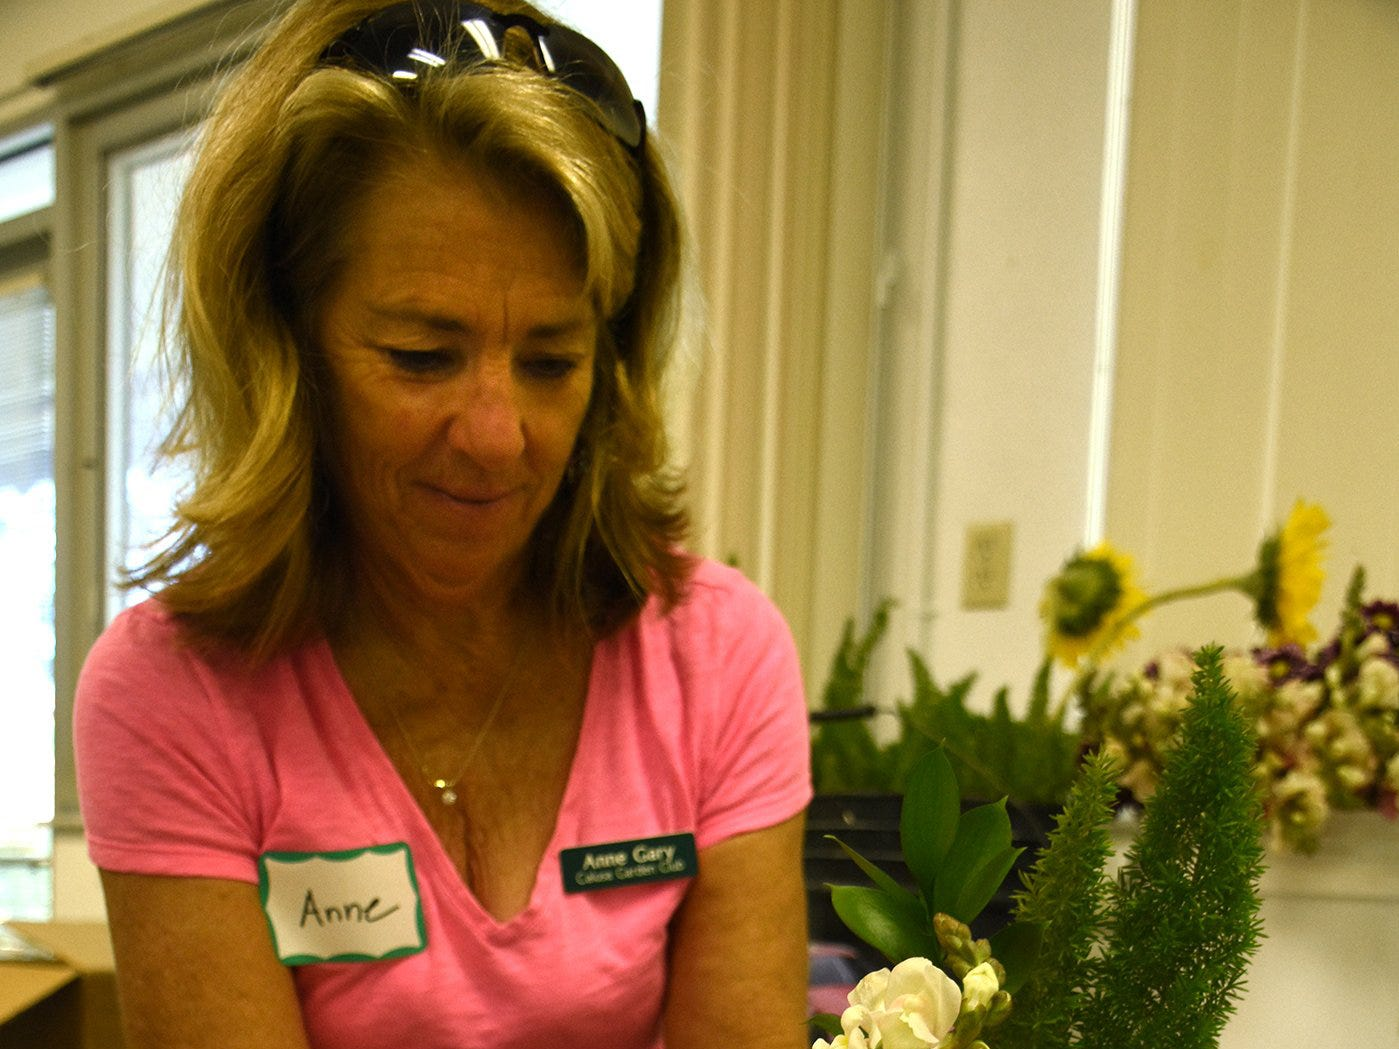 Anne Gary works on her arrangement in a class led by Diane Hughes and Juliette Flasche. The Calusa Garden Club Gardening Expo at Marco Island Center for the Arts on Saturday displayed beautiful arrangements and showed people how to create their own.